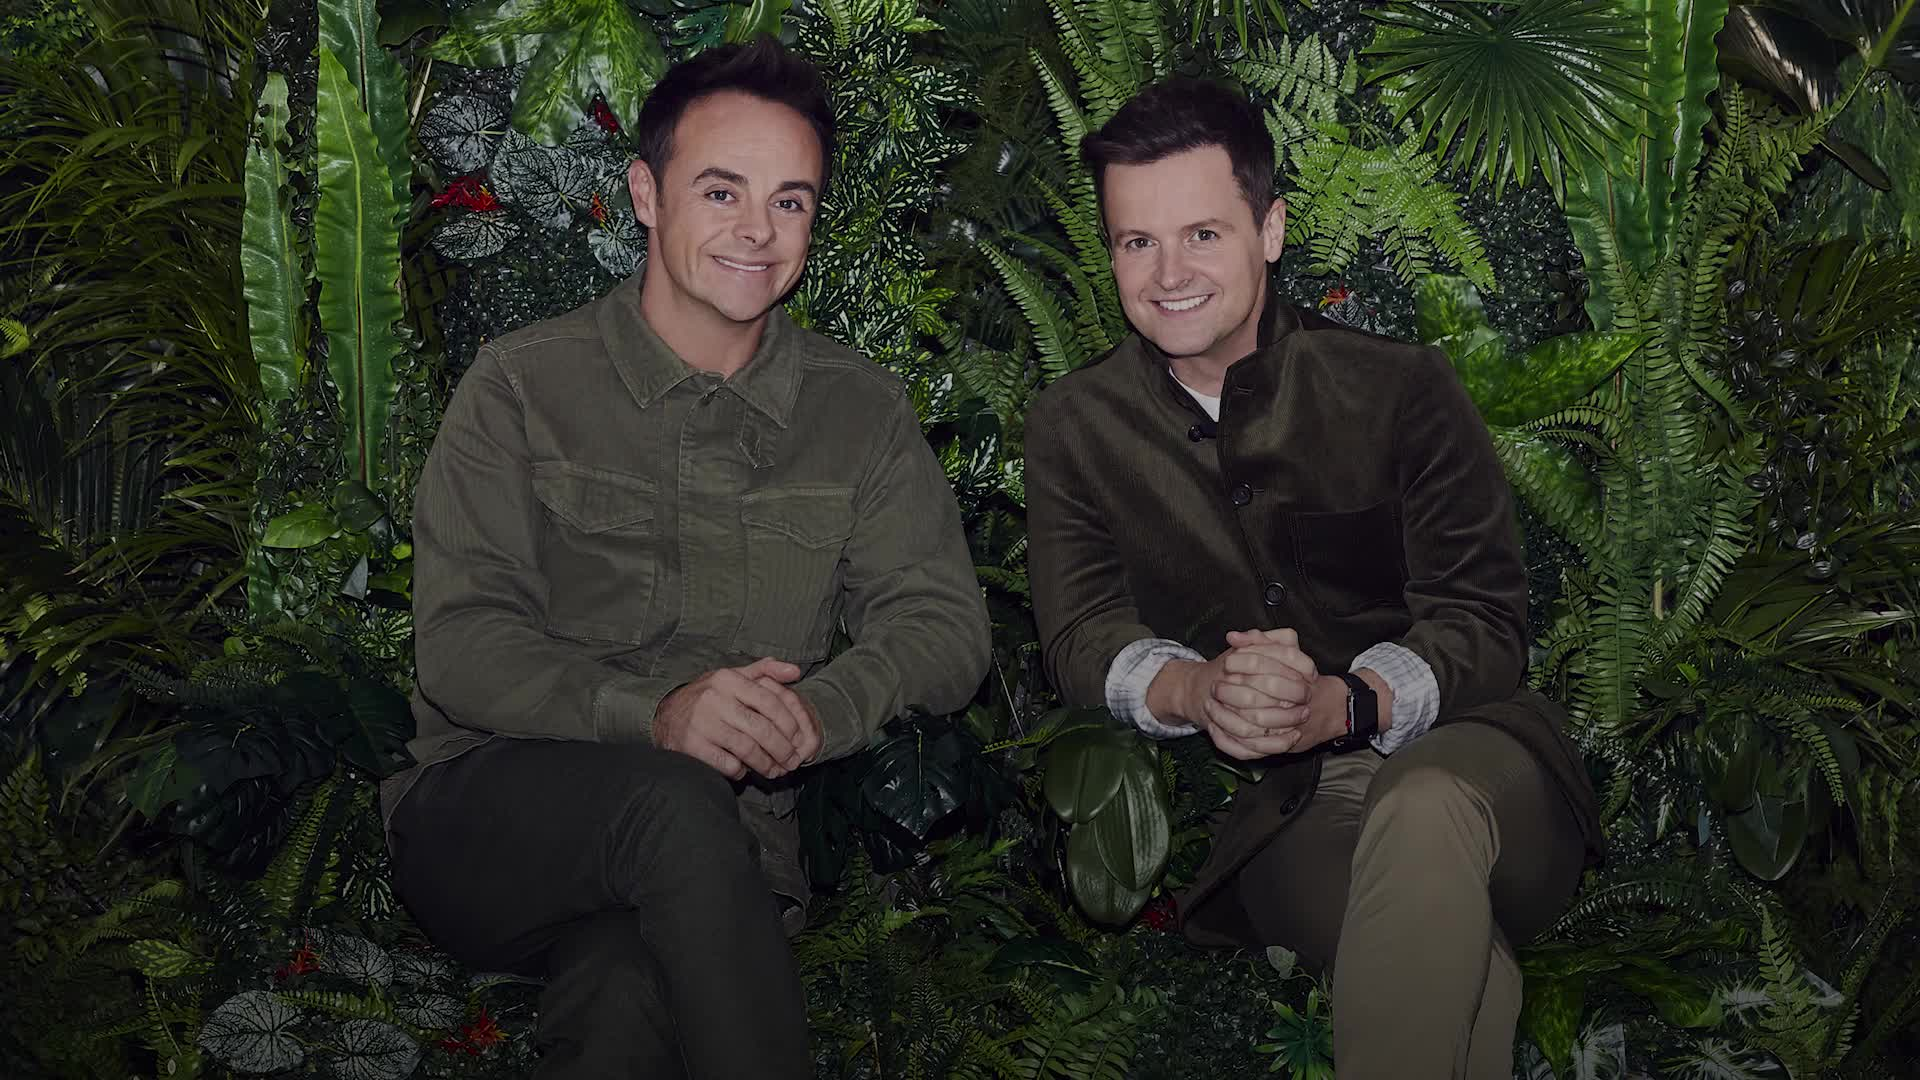 I'm A Celebrity… Get Me Out Of Here! 2019 Line-Up Confirmed To Include Caitlyn Jenner, Ian Wright And Nadine Coyle